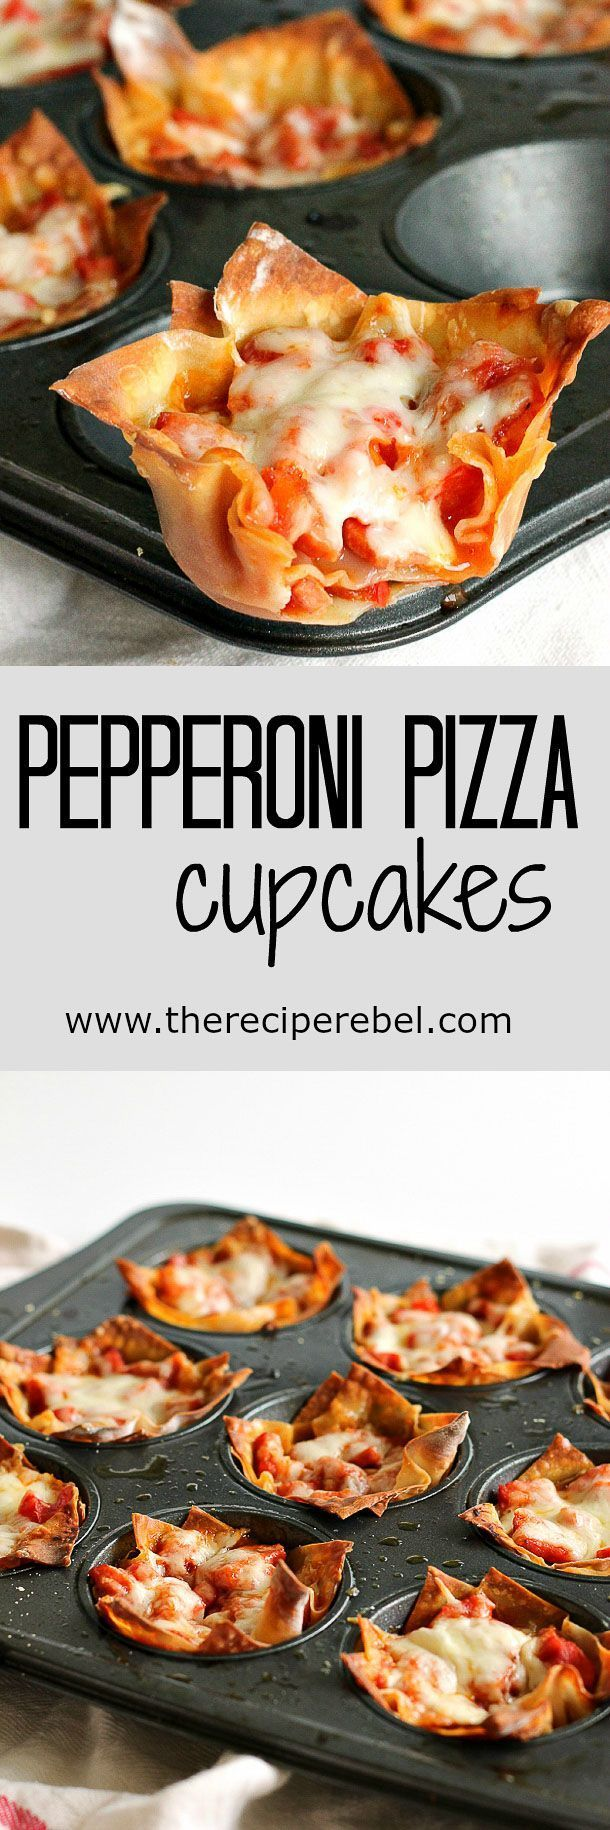 Pepperoni Pizza Cupcakes: pepperoni, cheese, and pizza sauce baked inside of crisp wonton wrappers: the ultimate handheld pizza! Only 4 main ingredients and 20 minutes! Perfect as an appetizer or a quick lunch. http://www.thereciperebel.com